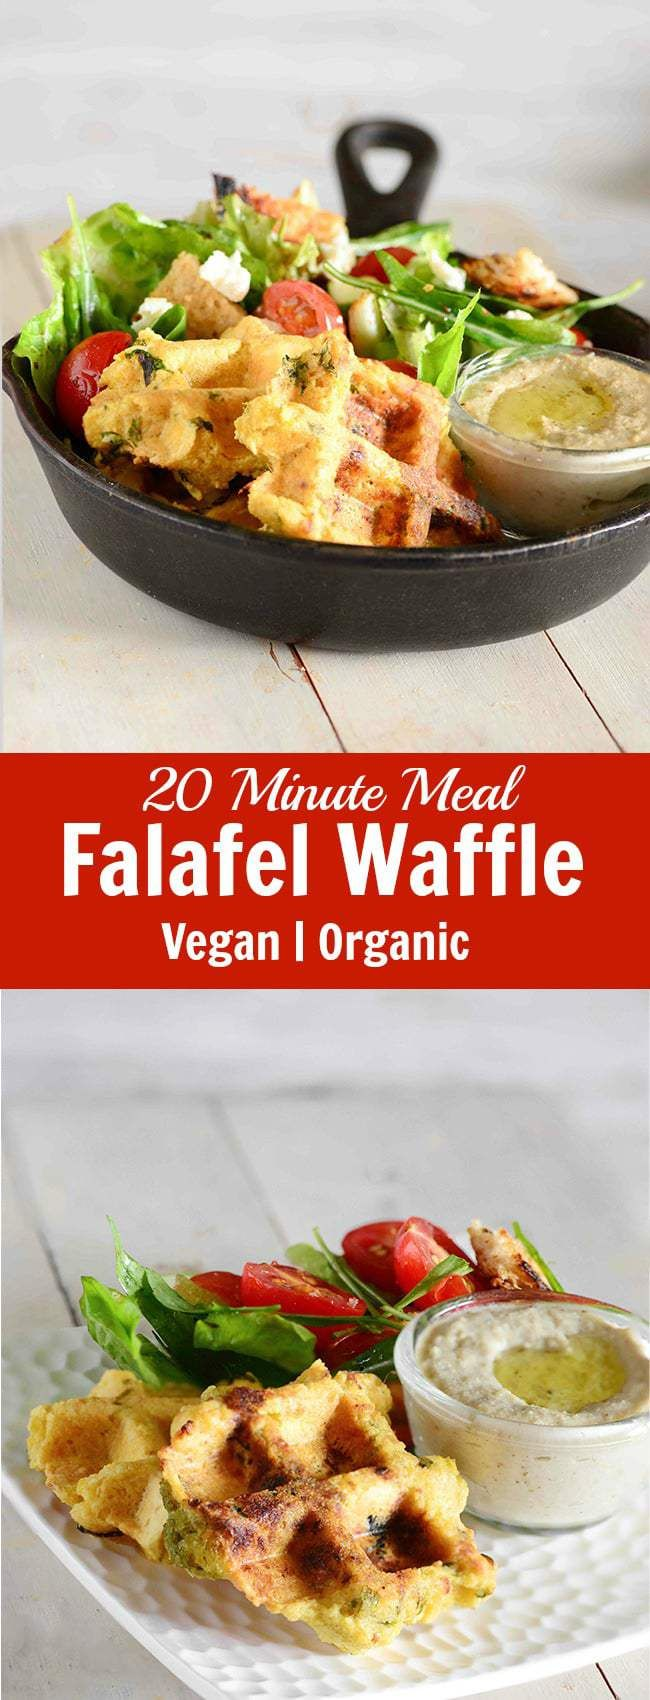 Falafel and waffle, two of my favorite words in the same breath in this falafel waffle recipe, and that makes it one of my absolute favorite way to eat falafels. And this falafel waffle recipe is an adaptation taking inspiration from this popular middle eastern food falafels. Falafel are a popular Middle Eastern/Mediterranean street food. It is often served with hummus and Tahini sauce. The taste of the falafel remains one of my favorite even till today. The other day when I was experim...